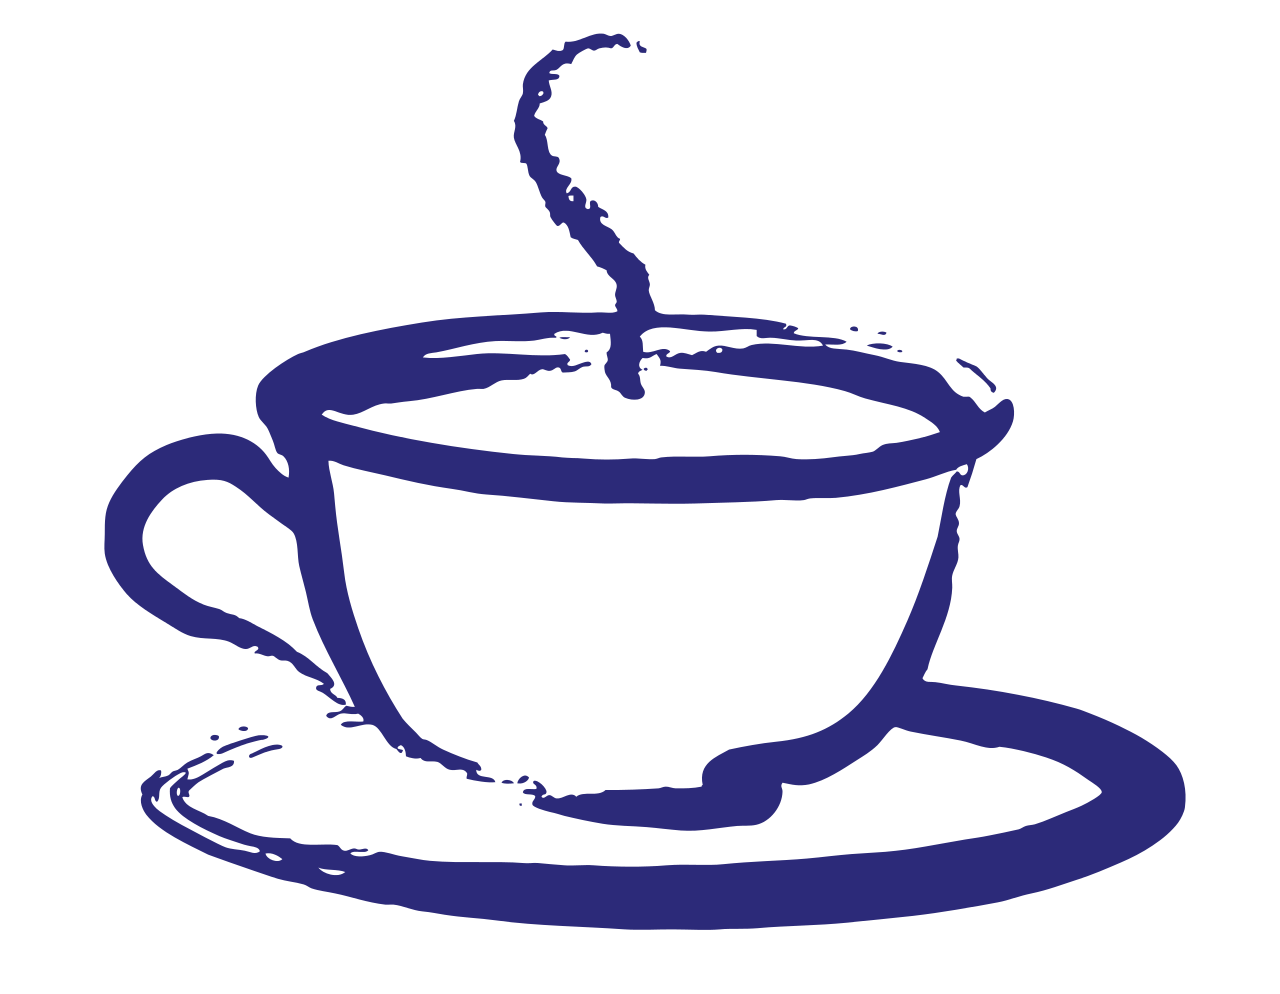 Teacup clipart british Art free svg image #25340